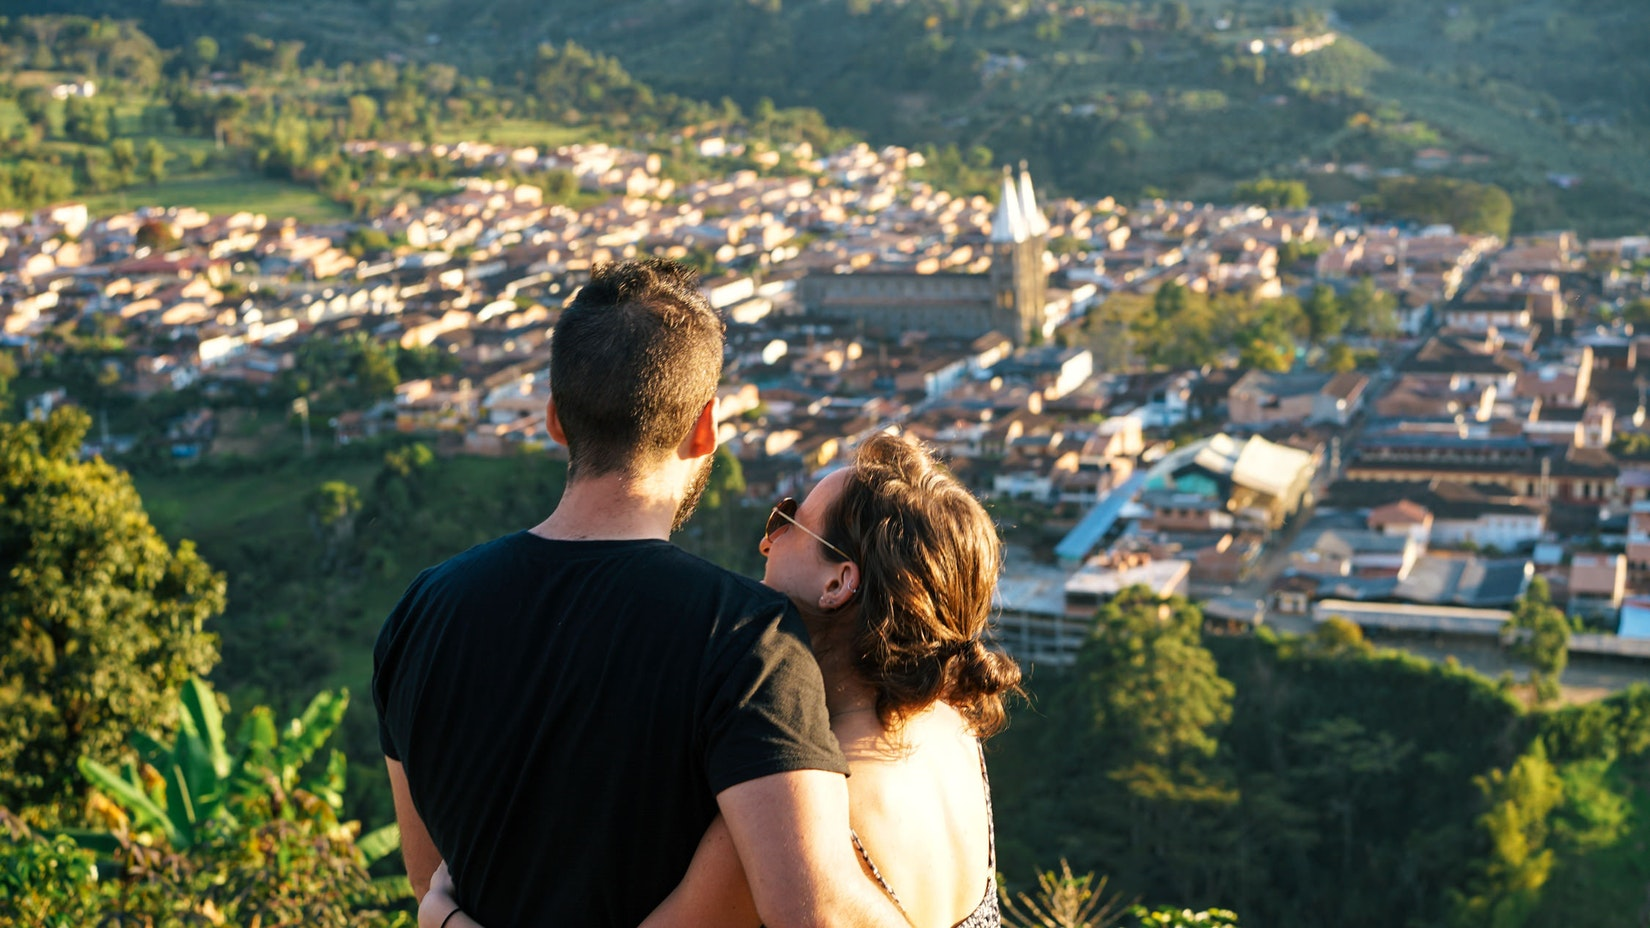 Becca and Dan at golden hour in Jardin, Colombia